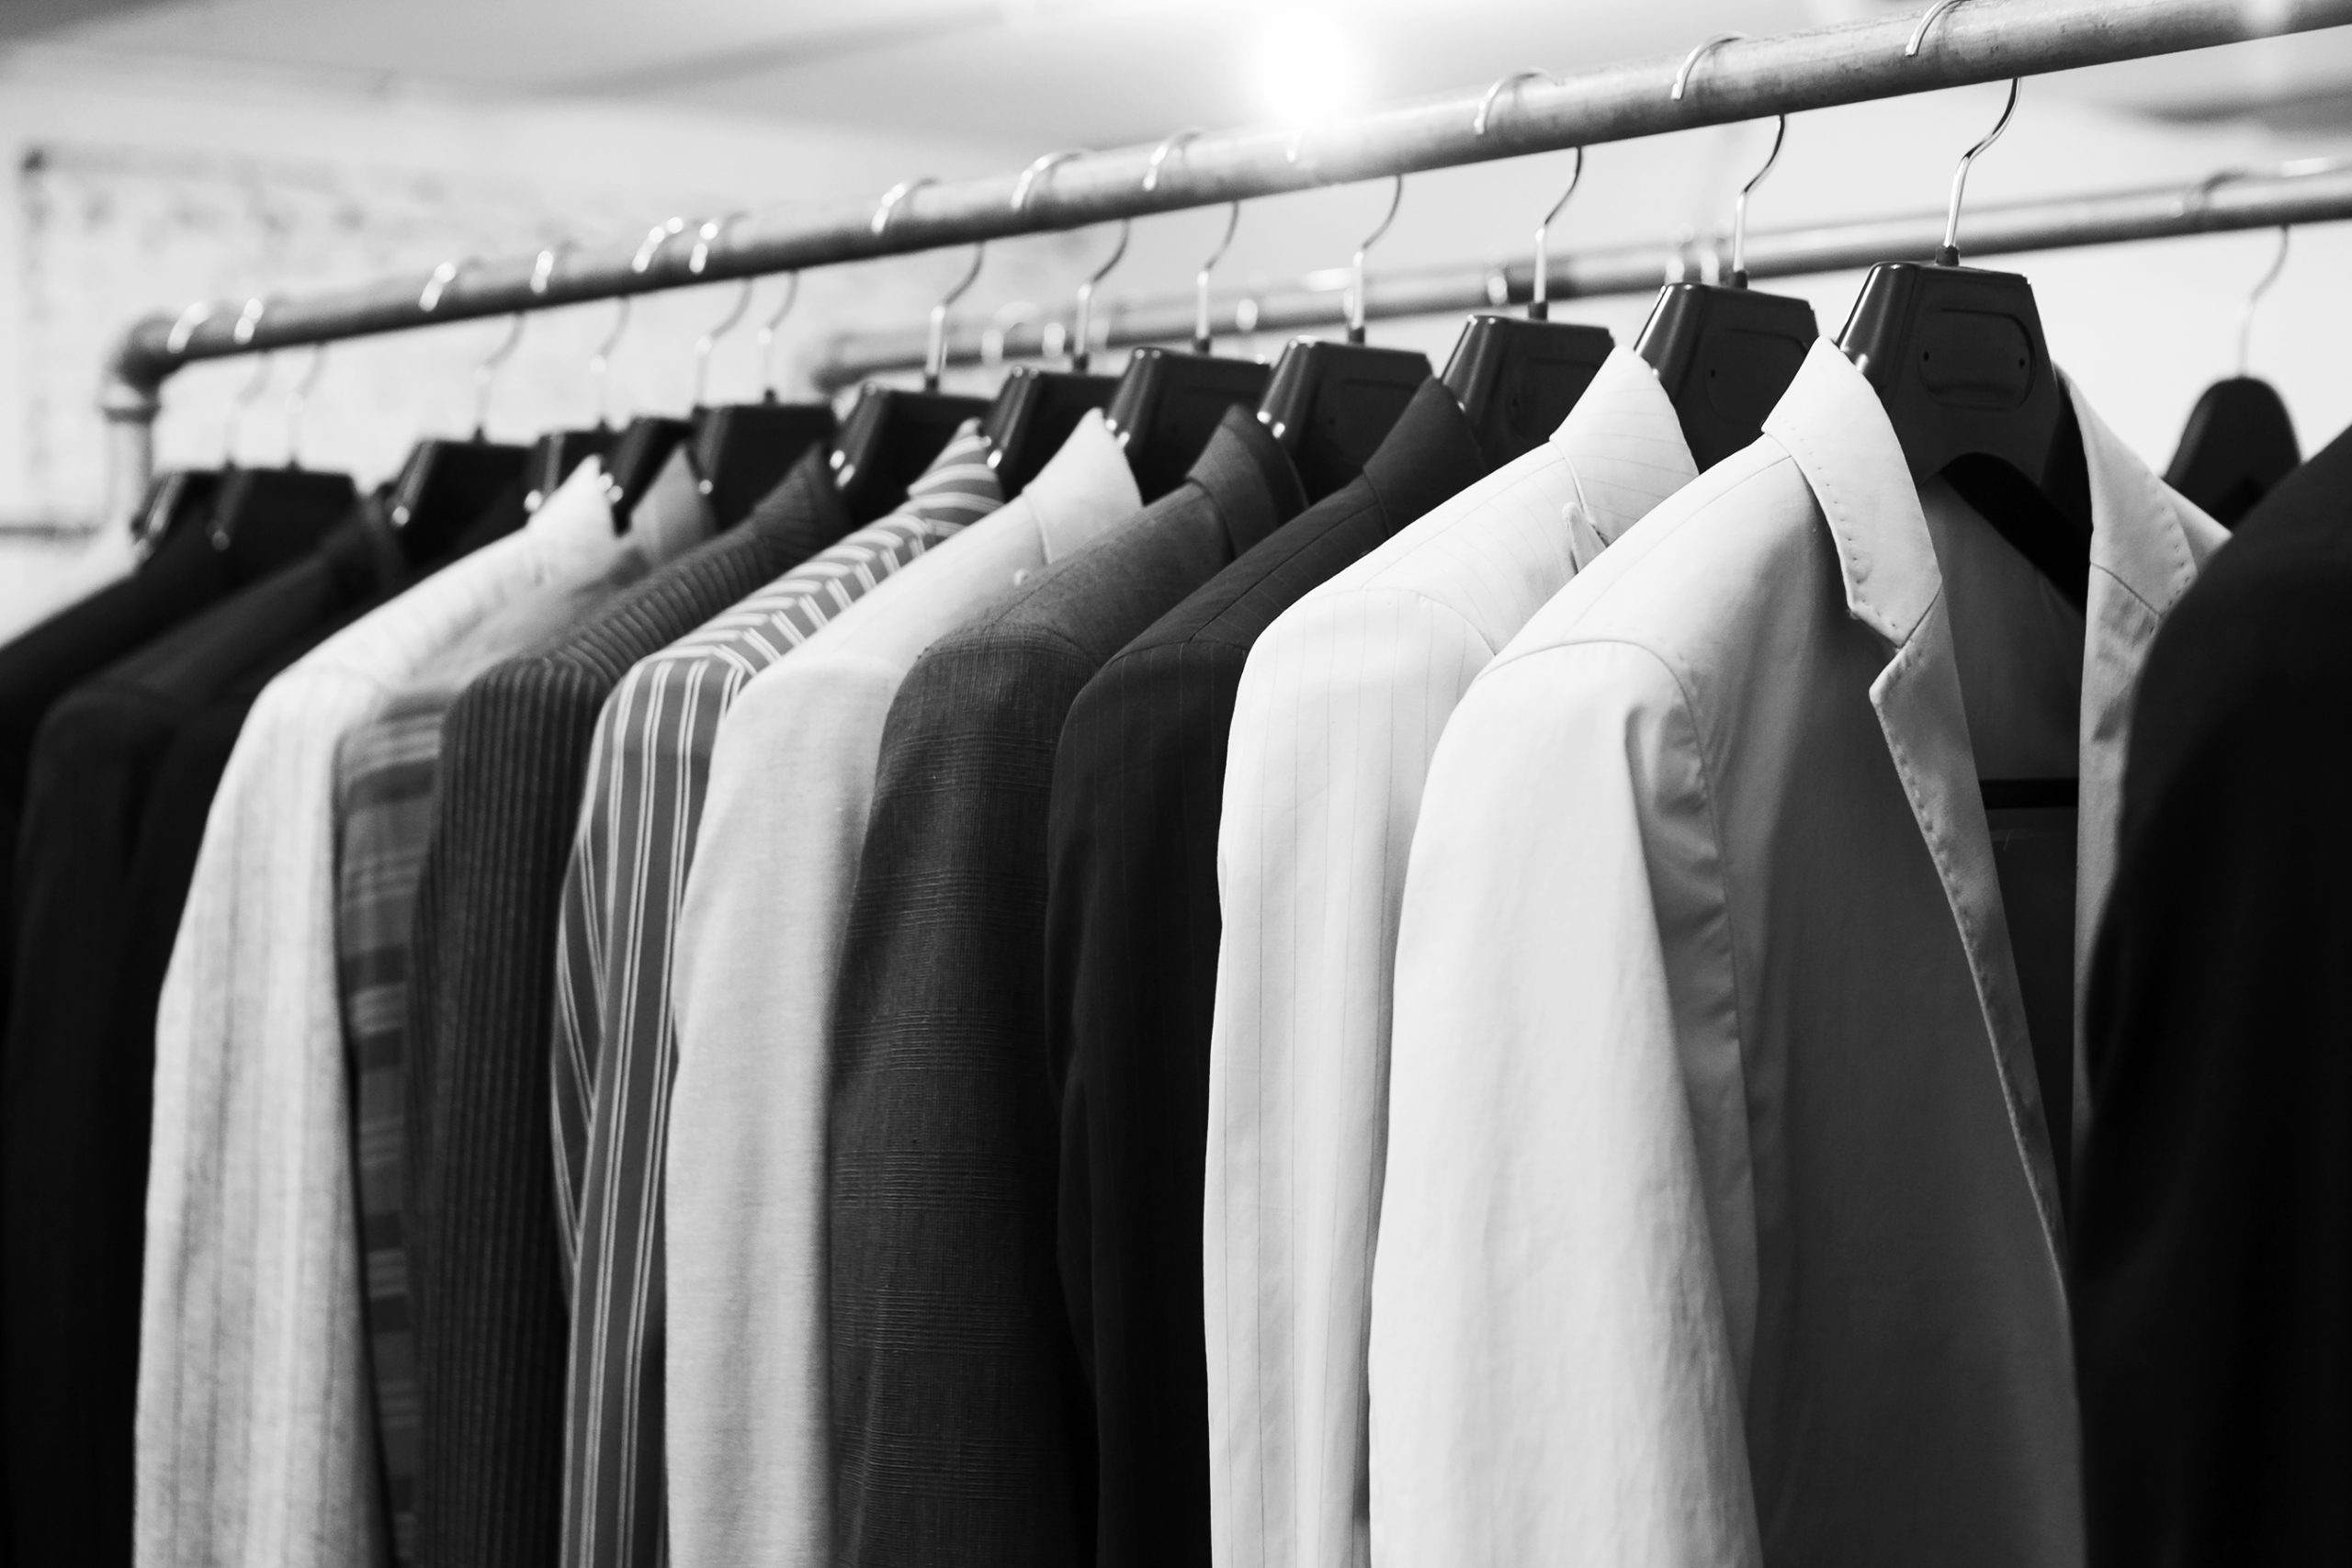 Drycleaning service